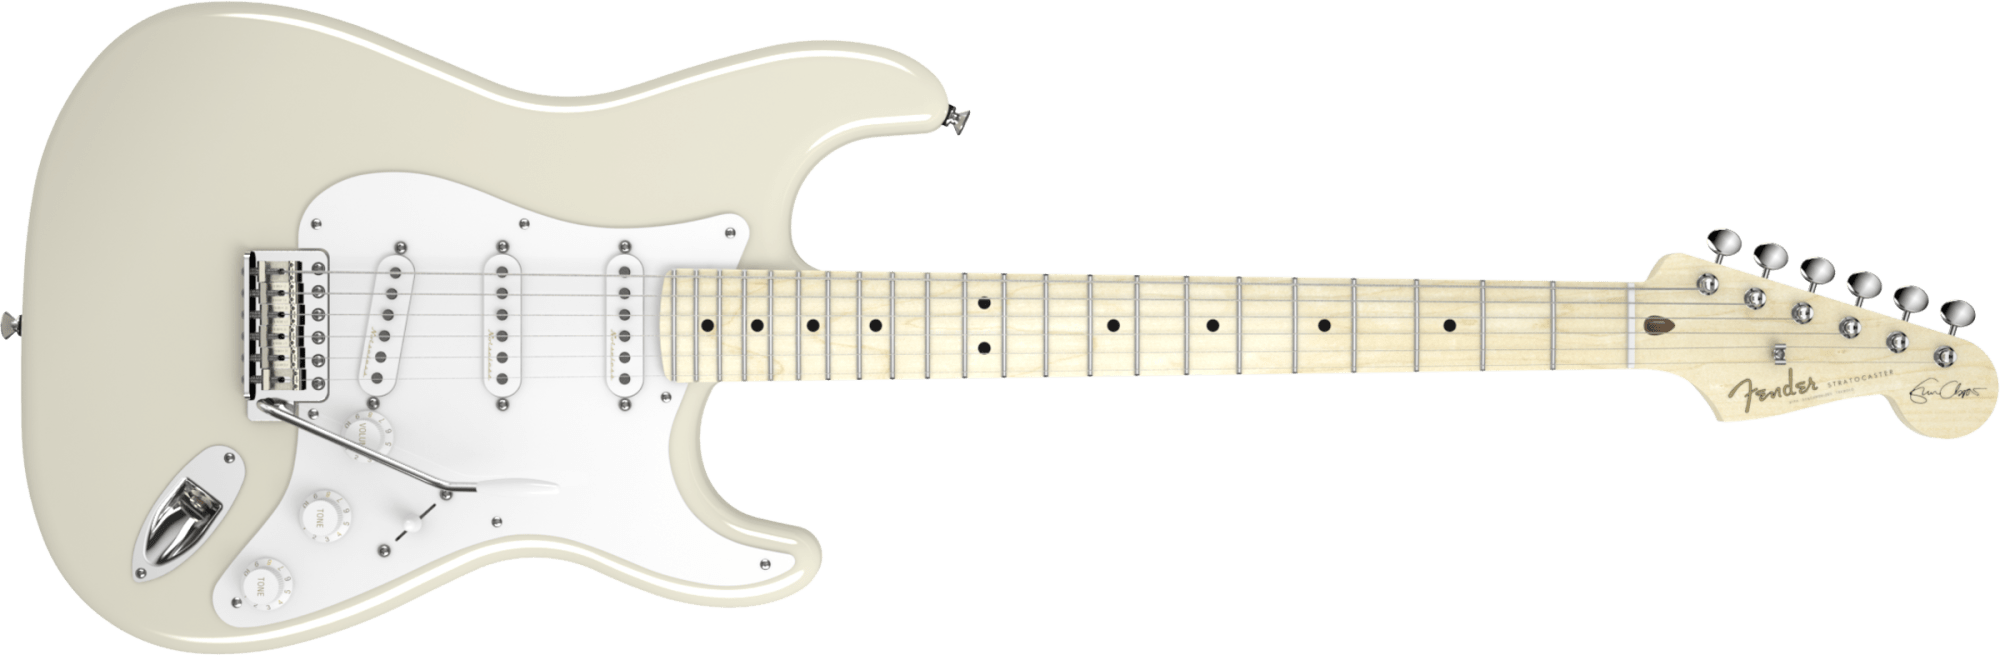 hight resolution of fender eric clapton stratocaster electric guitar olympic white long mcquade musical instruments